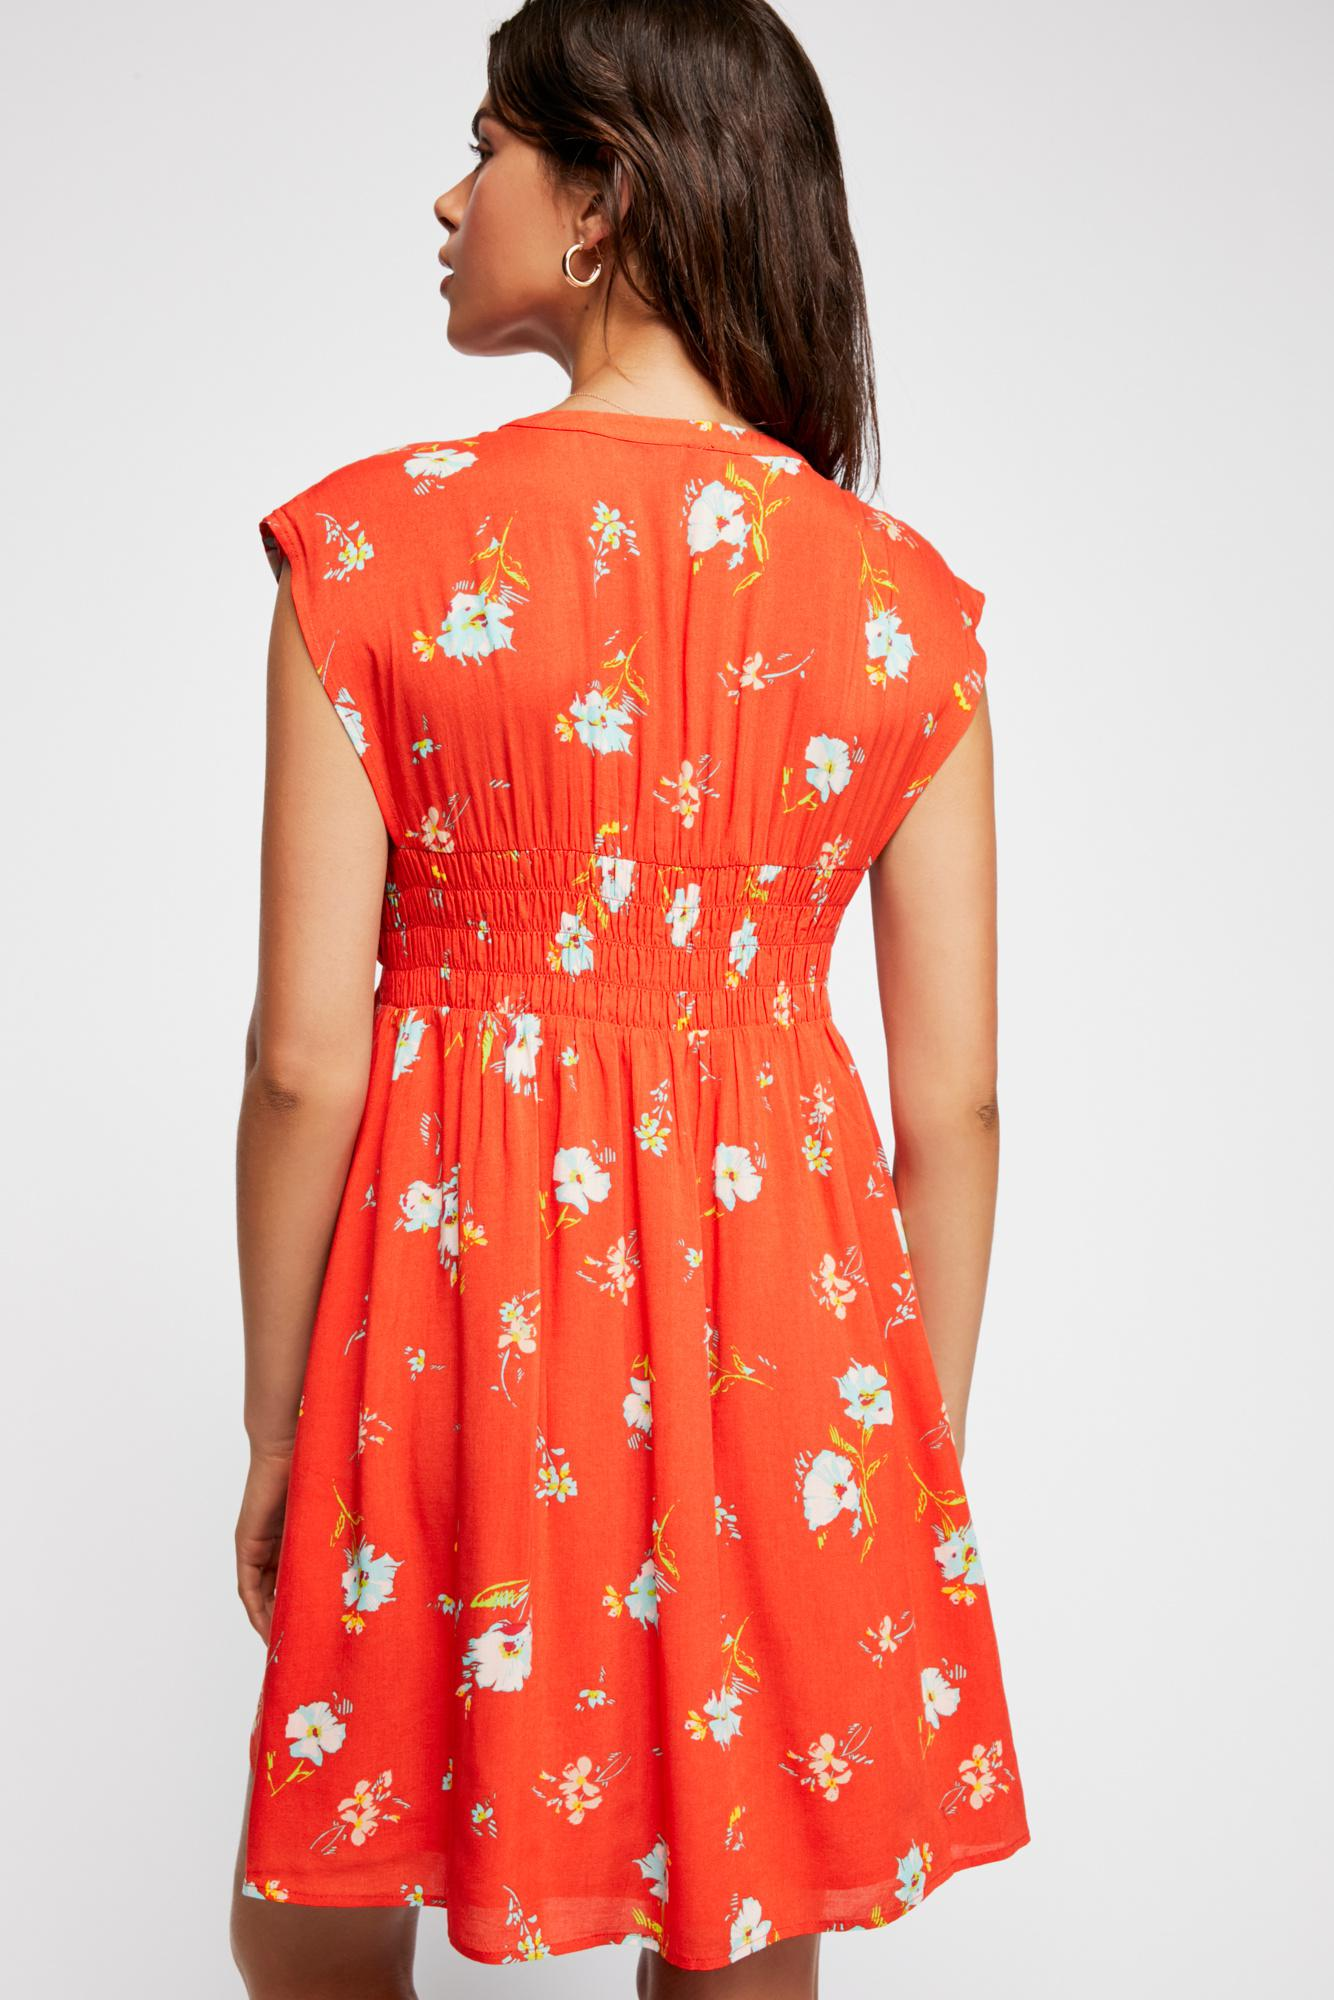 2efeabc75 Lyst - Free People Greatest Day Smocked Mini Dress in Red